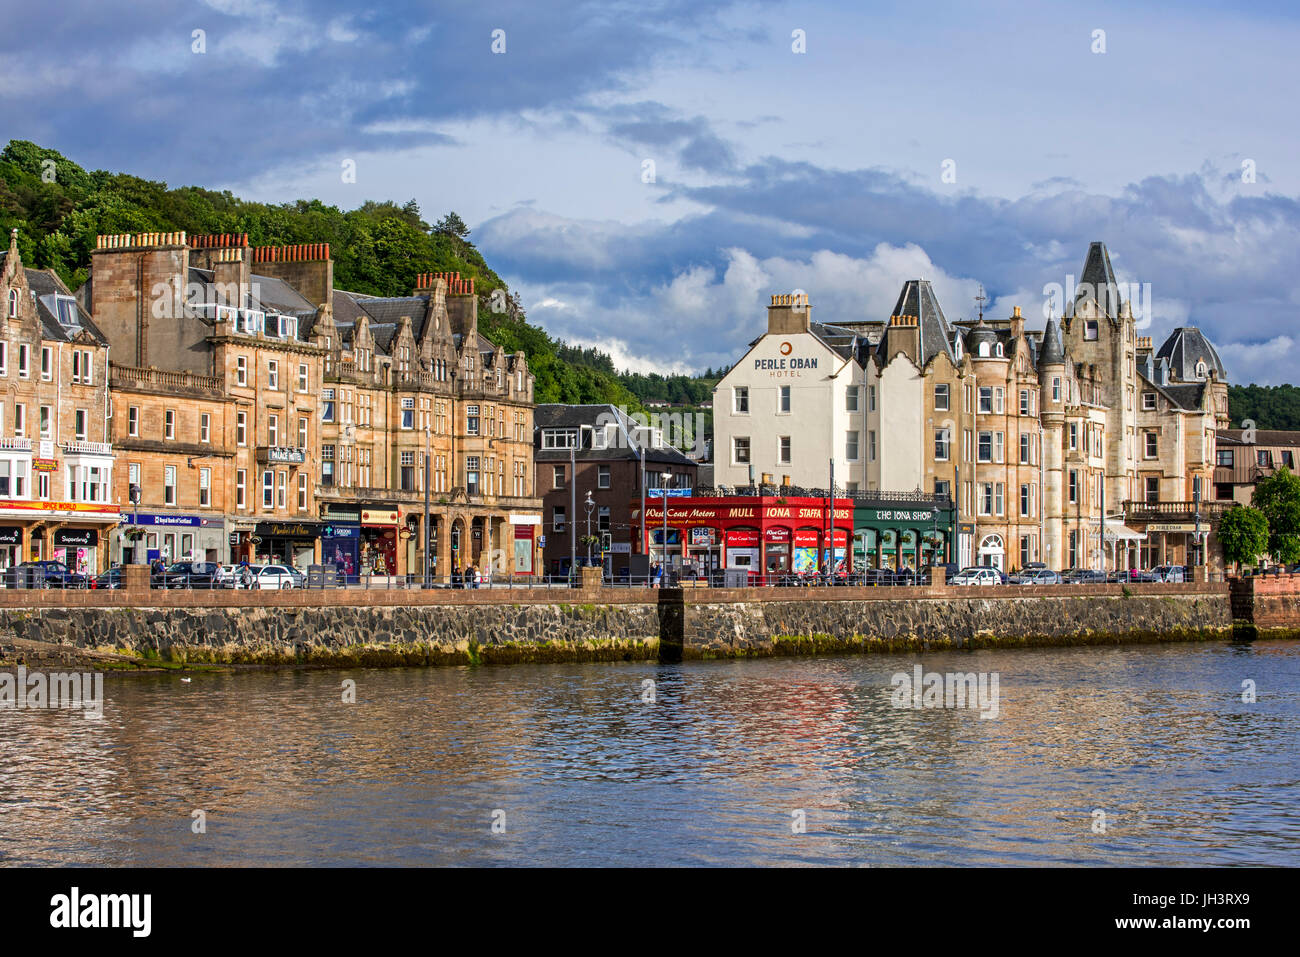 Hotels and shops along the waterfront at Oban, Argyll and Bute, Scotland, UK - Stock Image